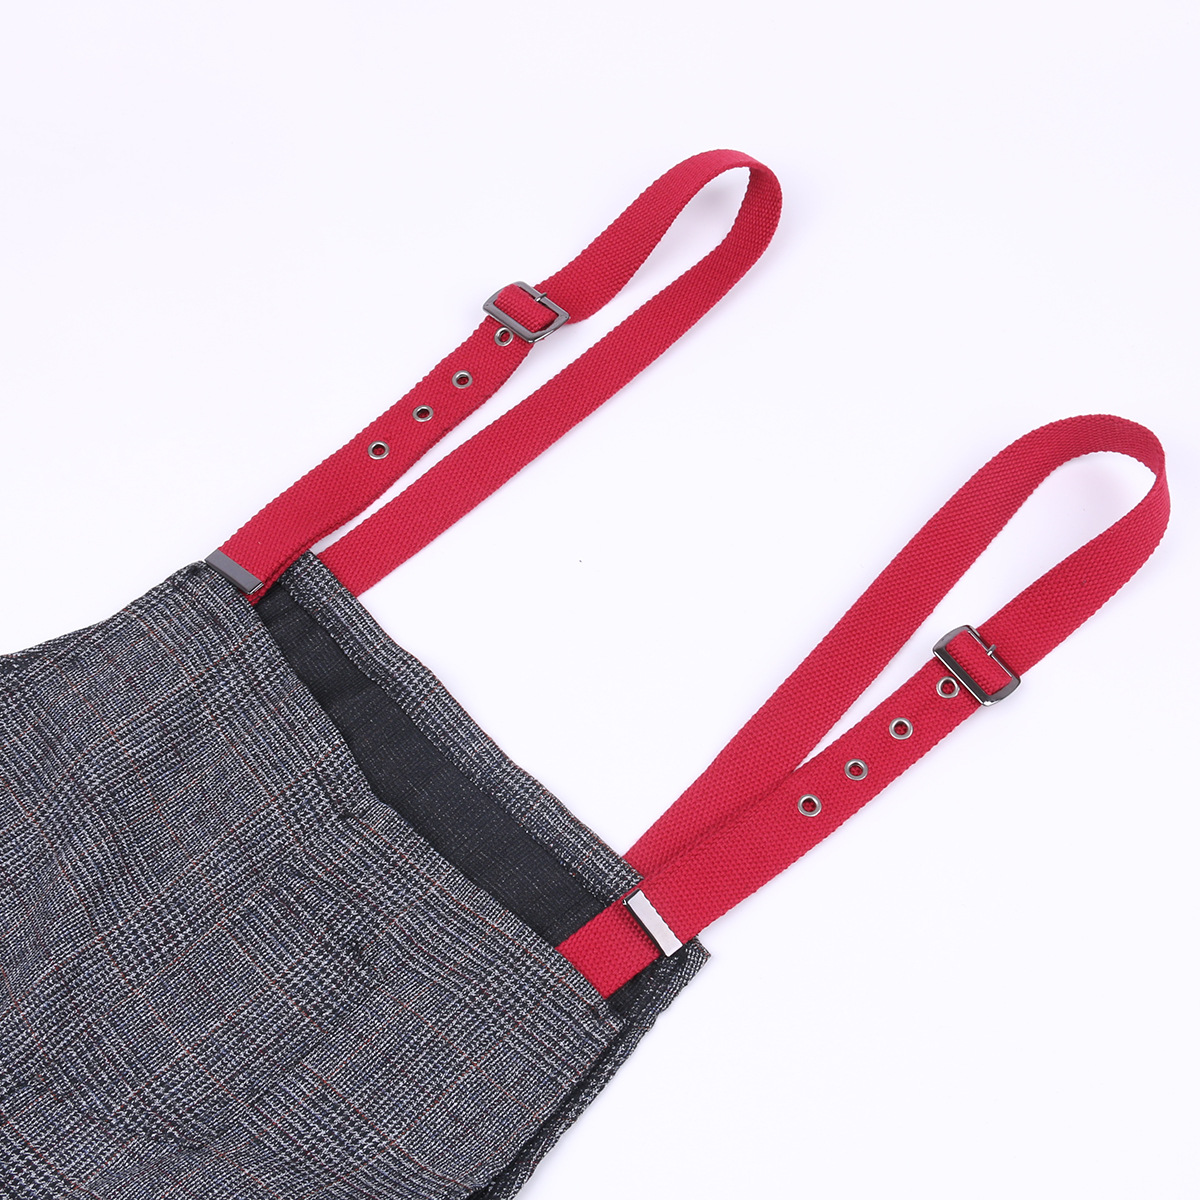 Suspender Pants Strap Canvas Strap Accessories Suspenders Non-Elasticity Eyelet Pin Buckle Adjustable Straps Sewing Accessories